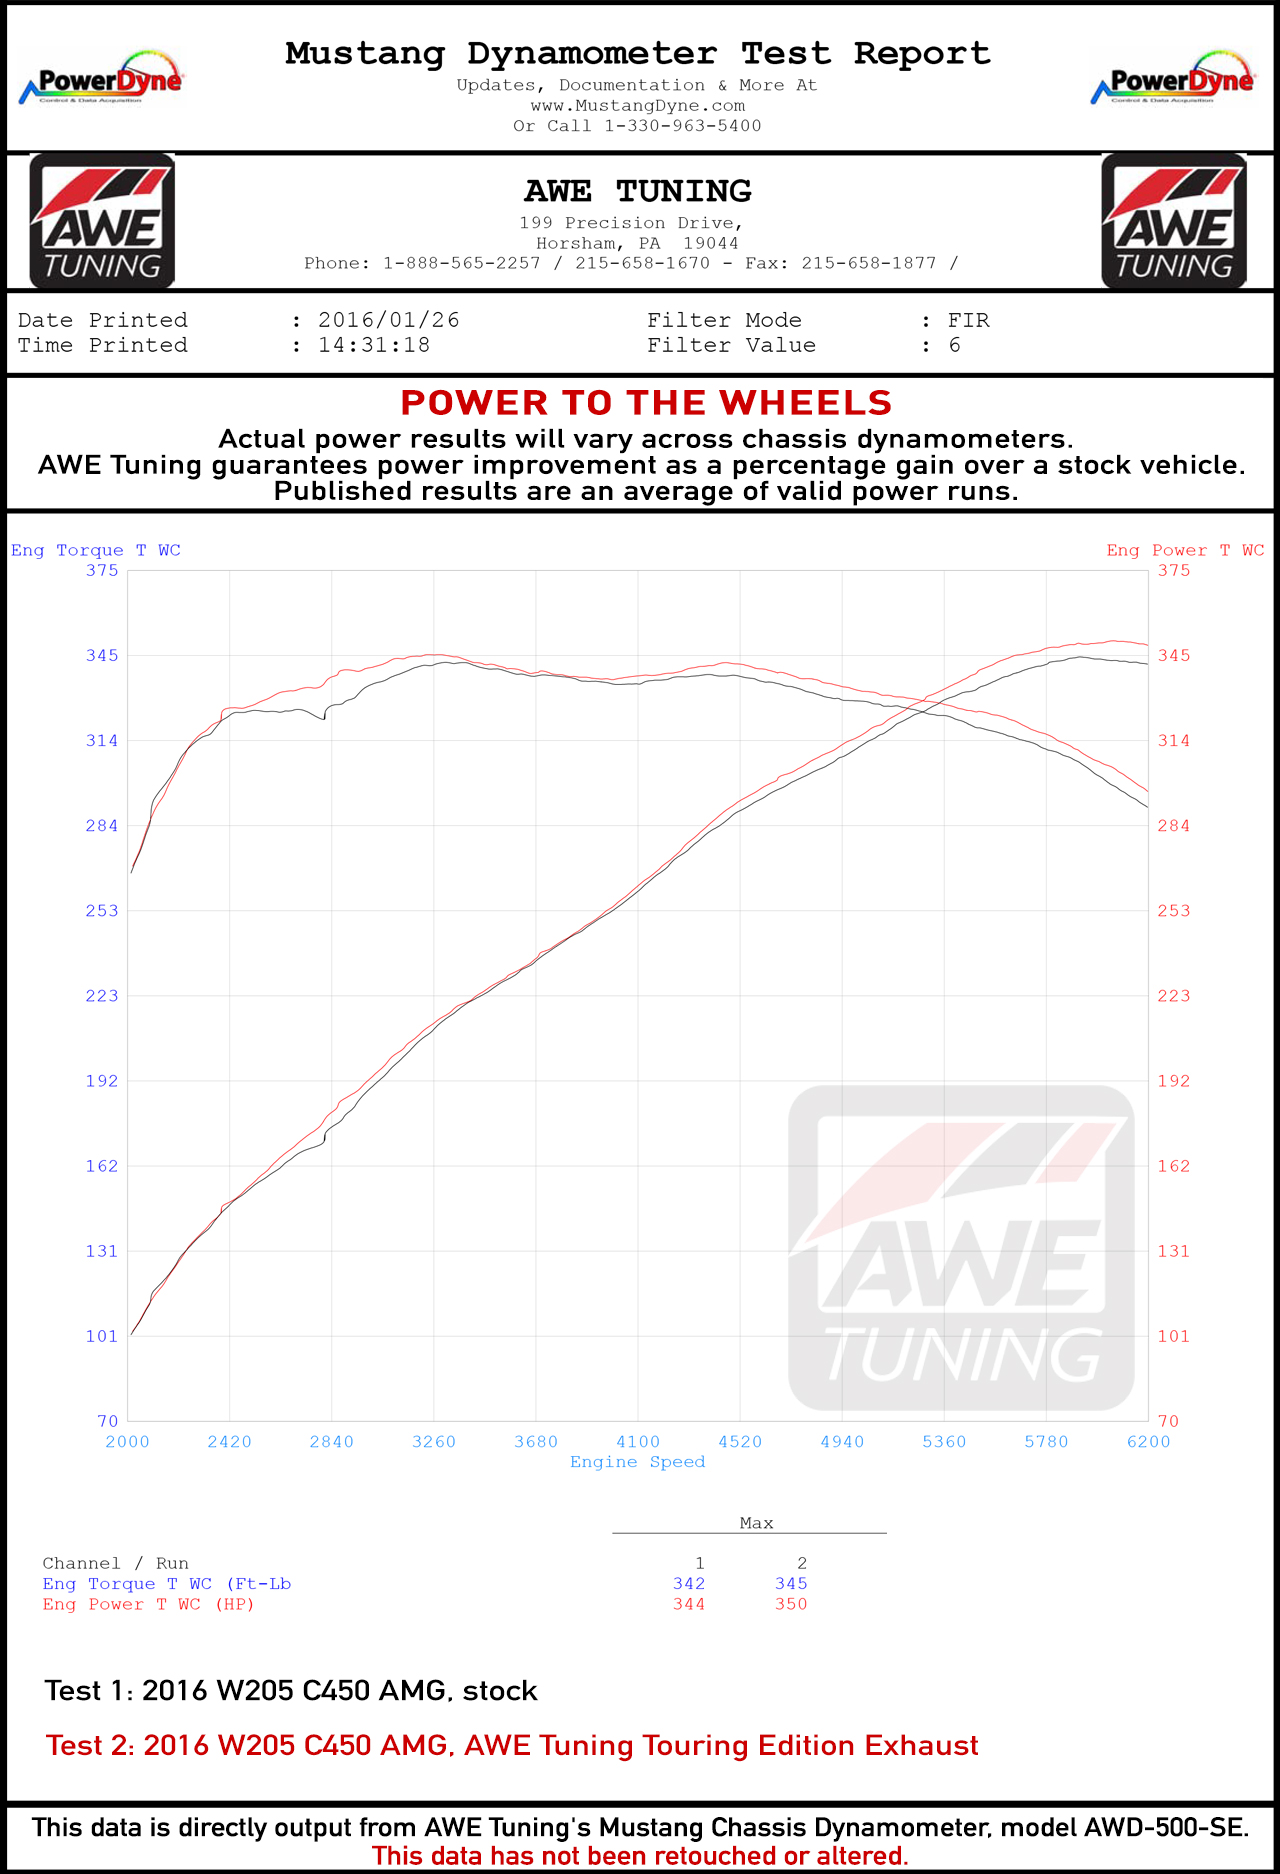 Wheel Horsepower Gains for the AWE Tuning C450 AMG Exhaust System